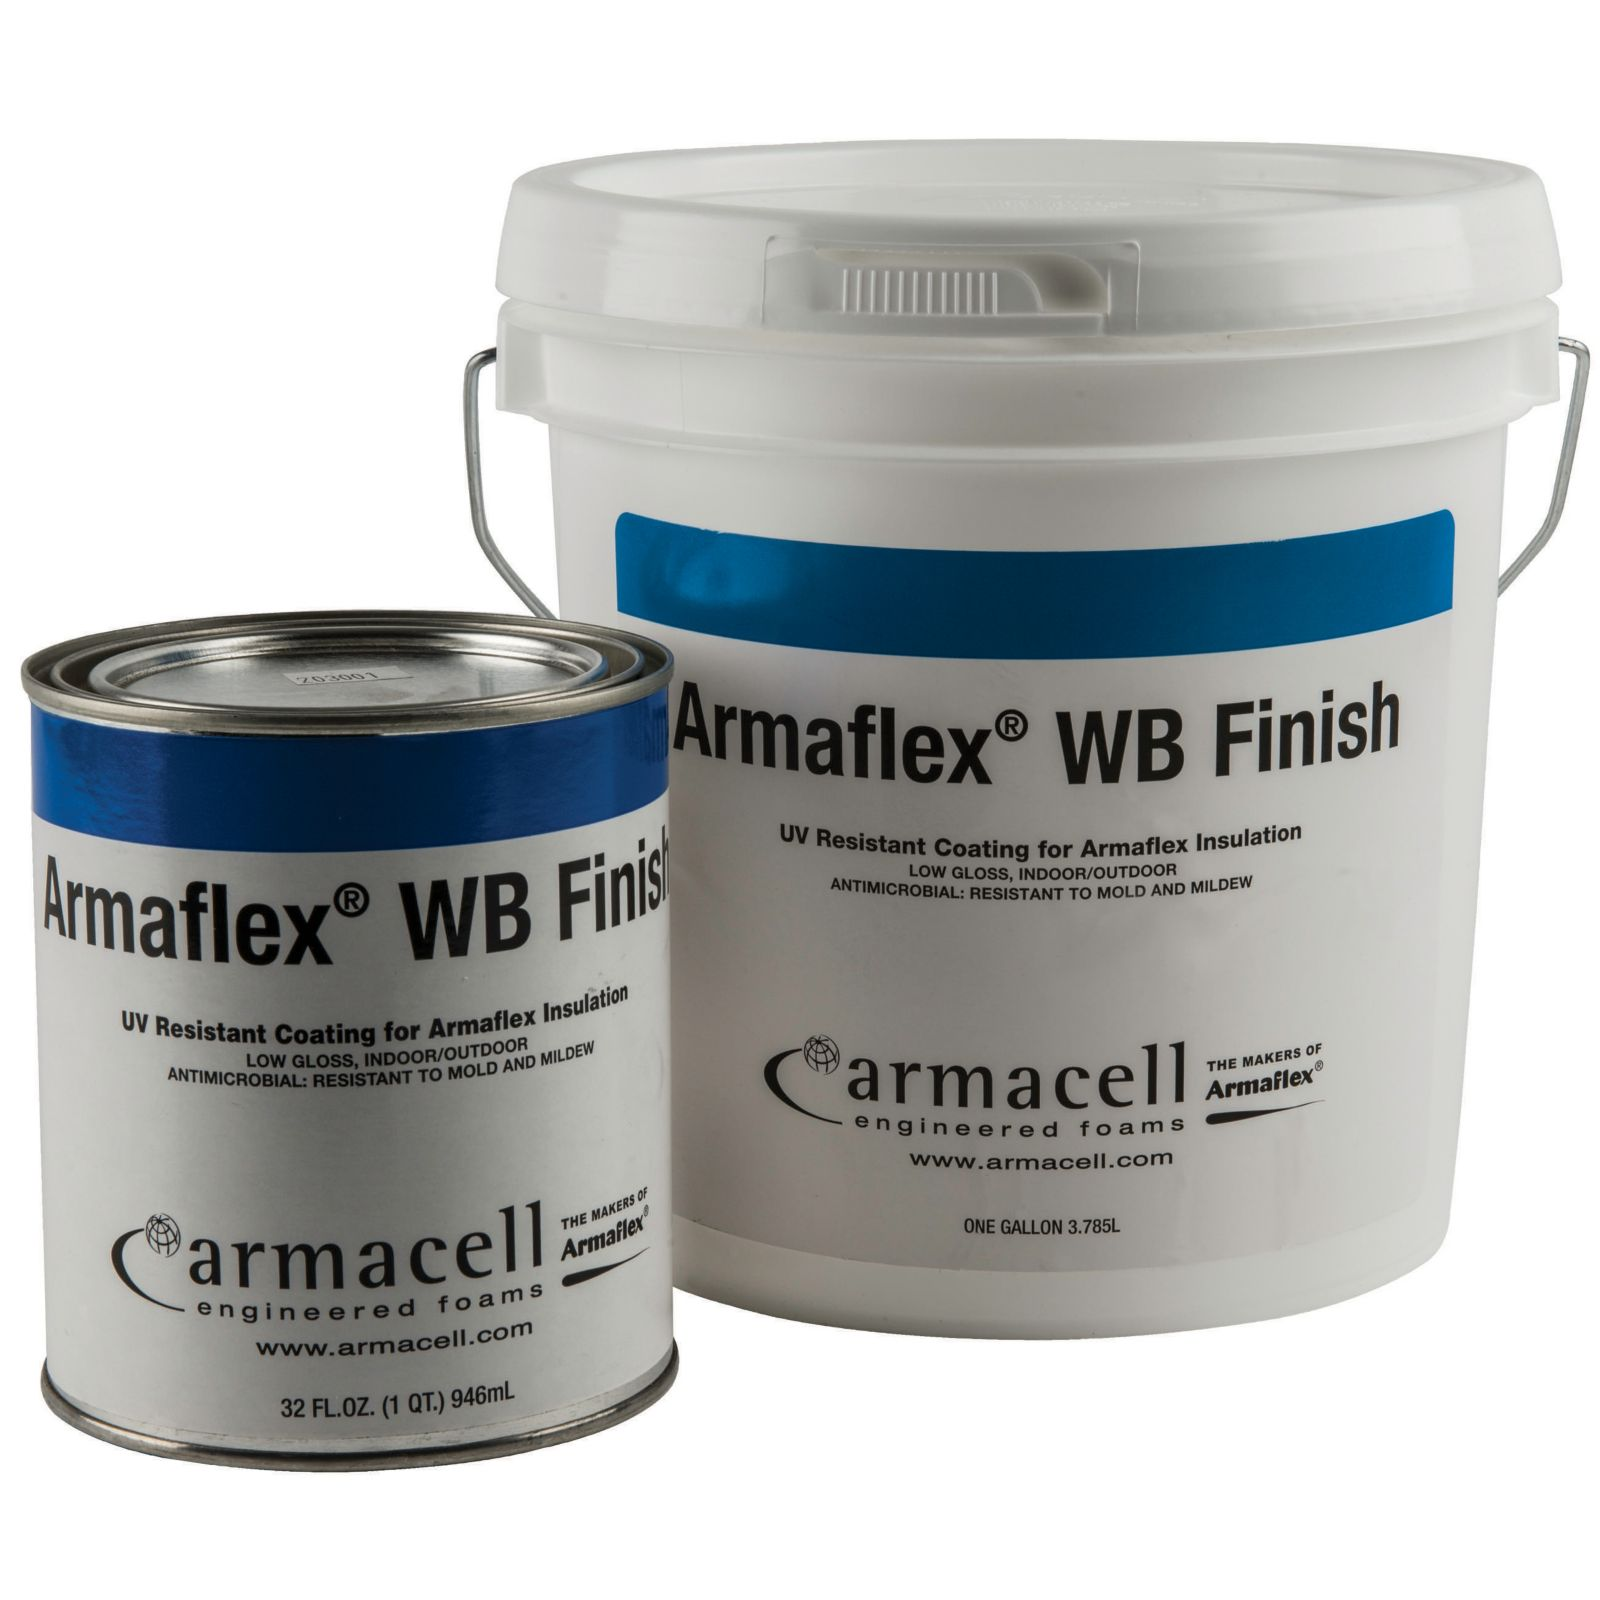 Armacell WBF8530005 - Armaflexa® Water Base Finish, UV Paint, Quart Container